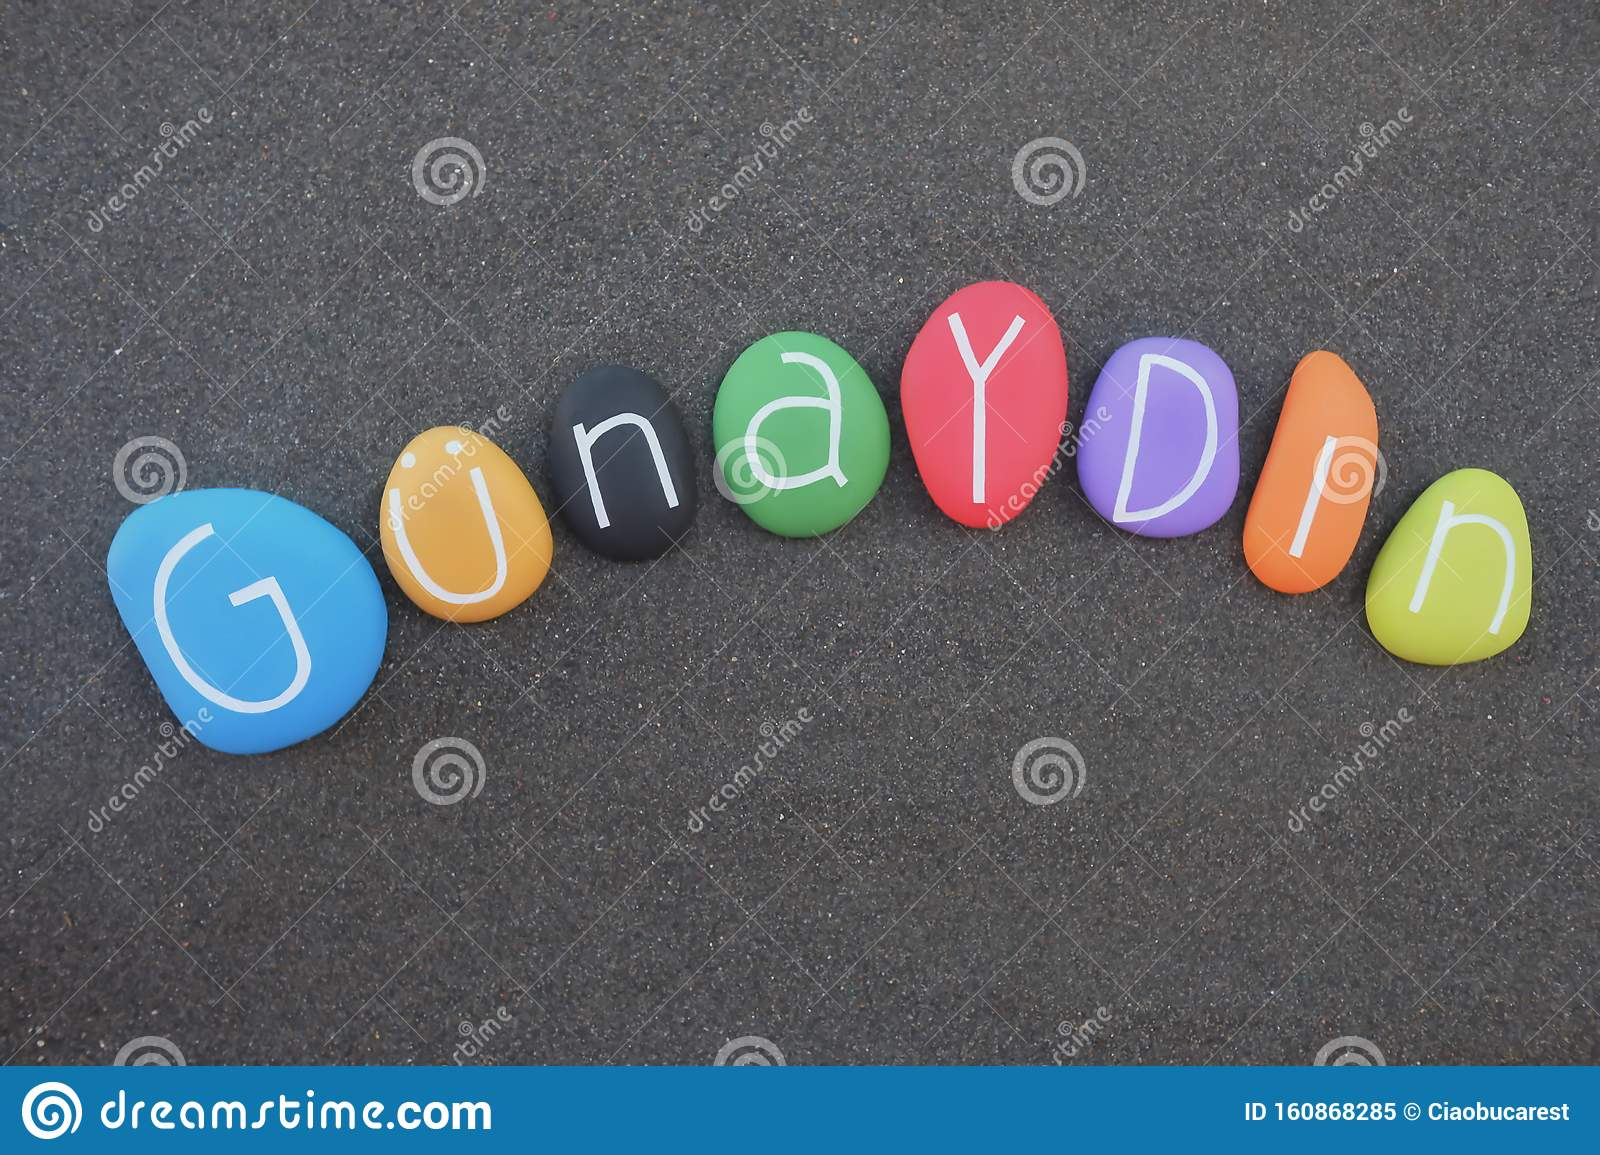 Günaydın, Good morning in turkish language composed with multicolored stone letters over black volcanic sand